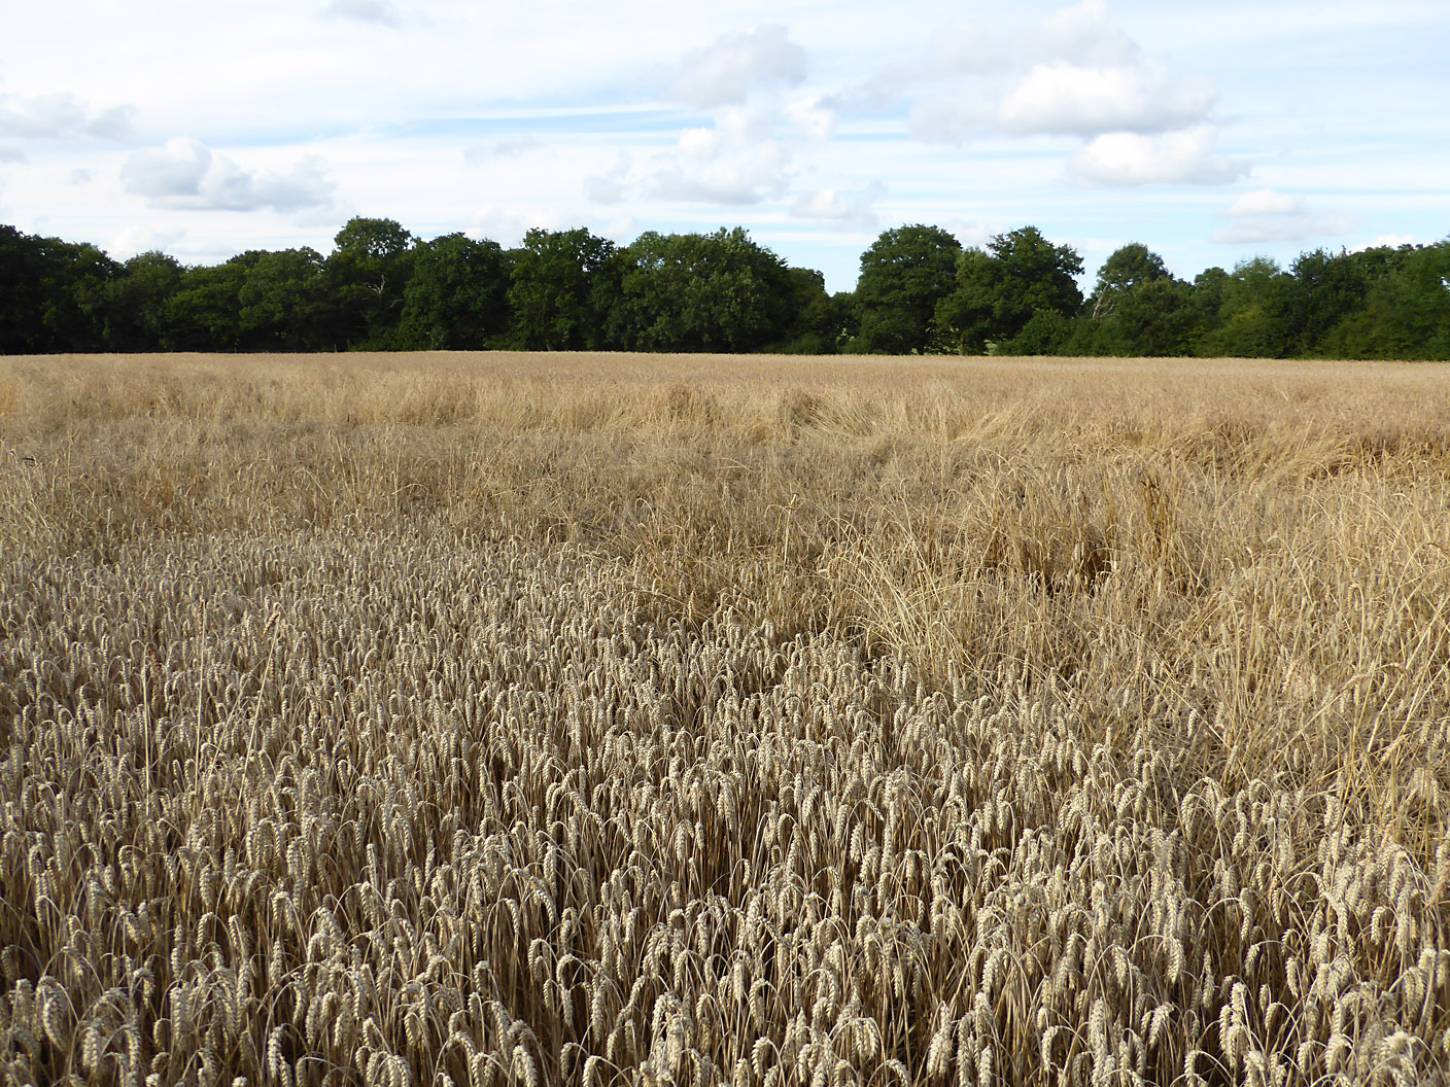 Old Kent Red,an area of lodging, standing crop behind, Nelson modern wheat in front, farm review pre-harvest '17 - 6:15pm&nbsp;1<sup>st</sup>&nbsp;Aug.&nbsp;'17  <a href='http://maps.google.com/?t=h&q=51.208178,-0.085503&z=18&output=embed' target=_blank><img src='http://www.brockwell-bake.org.uk/img/marker.png' style='border:none;vertical-align:top' height=16px></a>